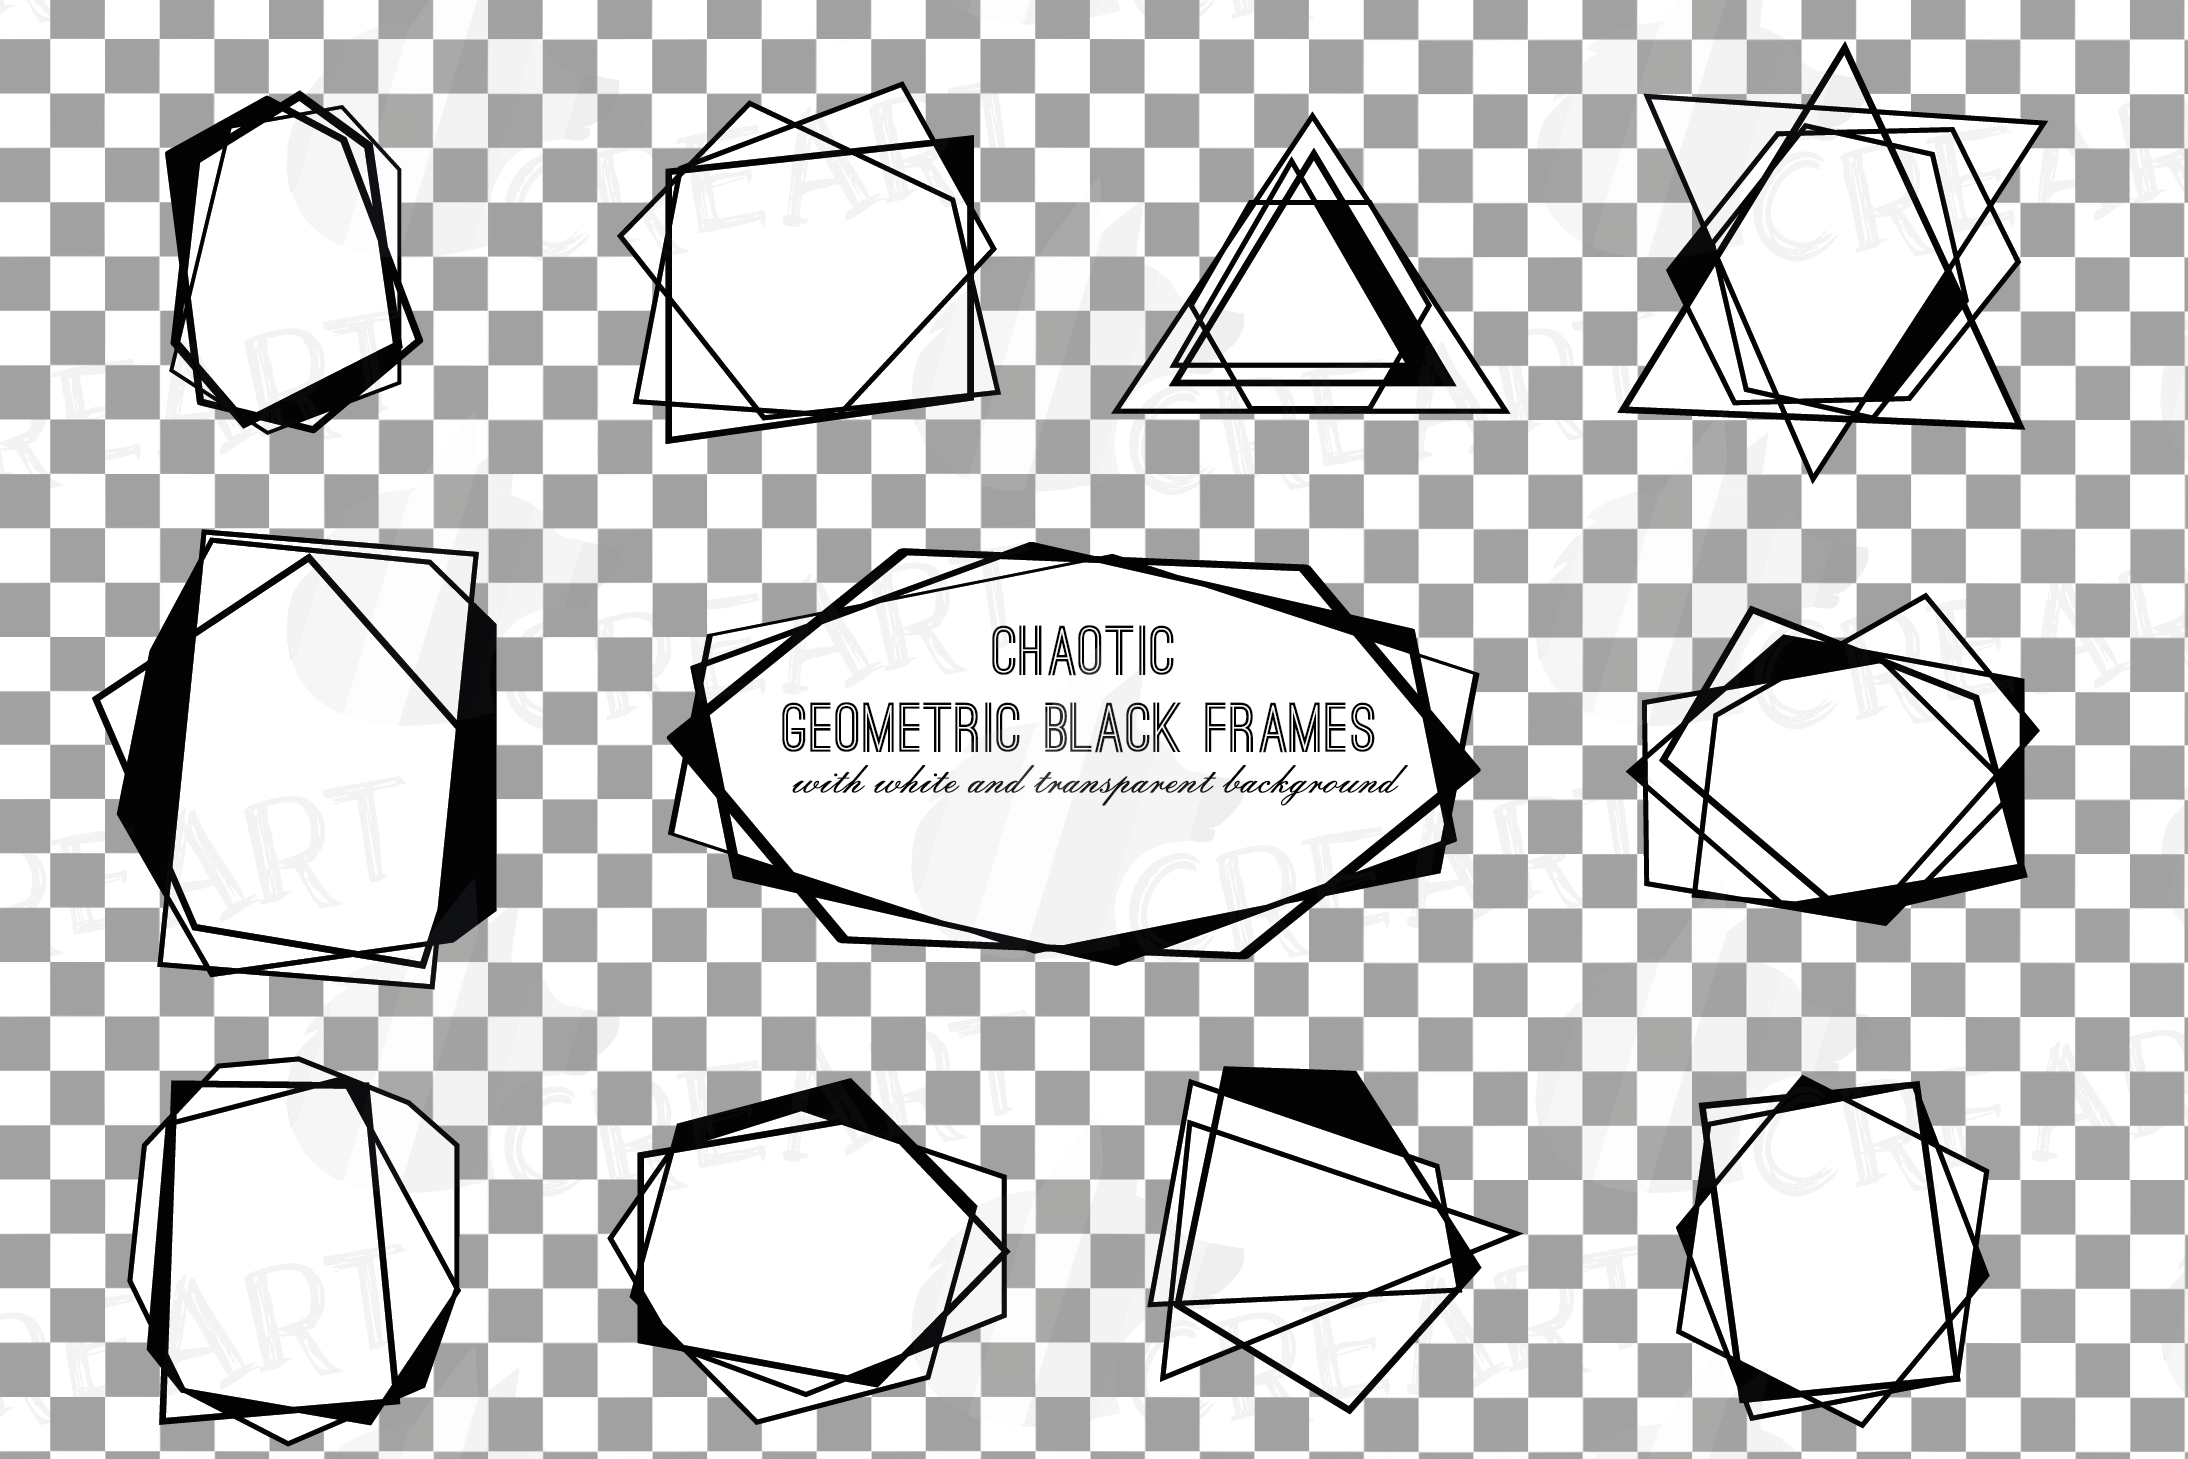 Chaotic geometric black frames, lineal frames clip art example image 2